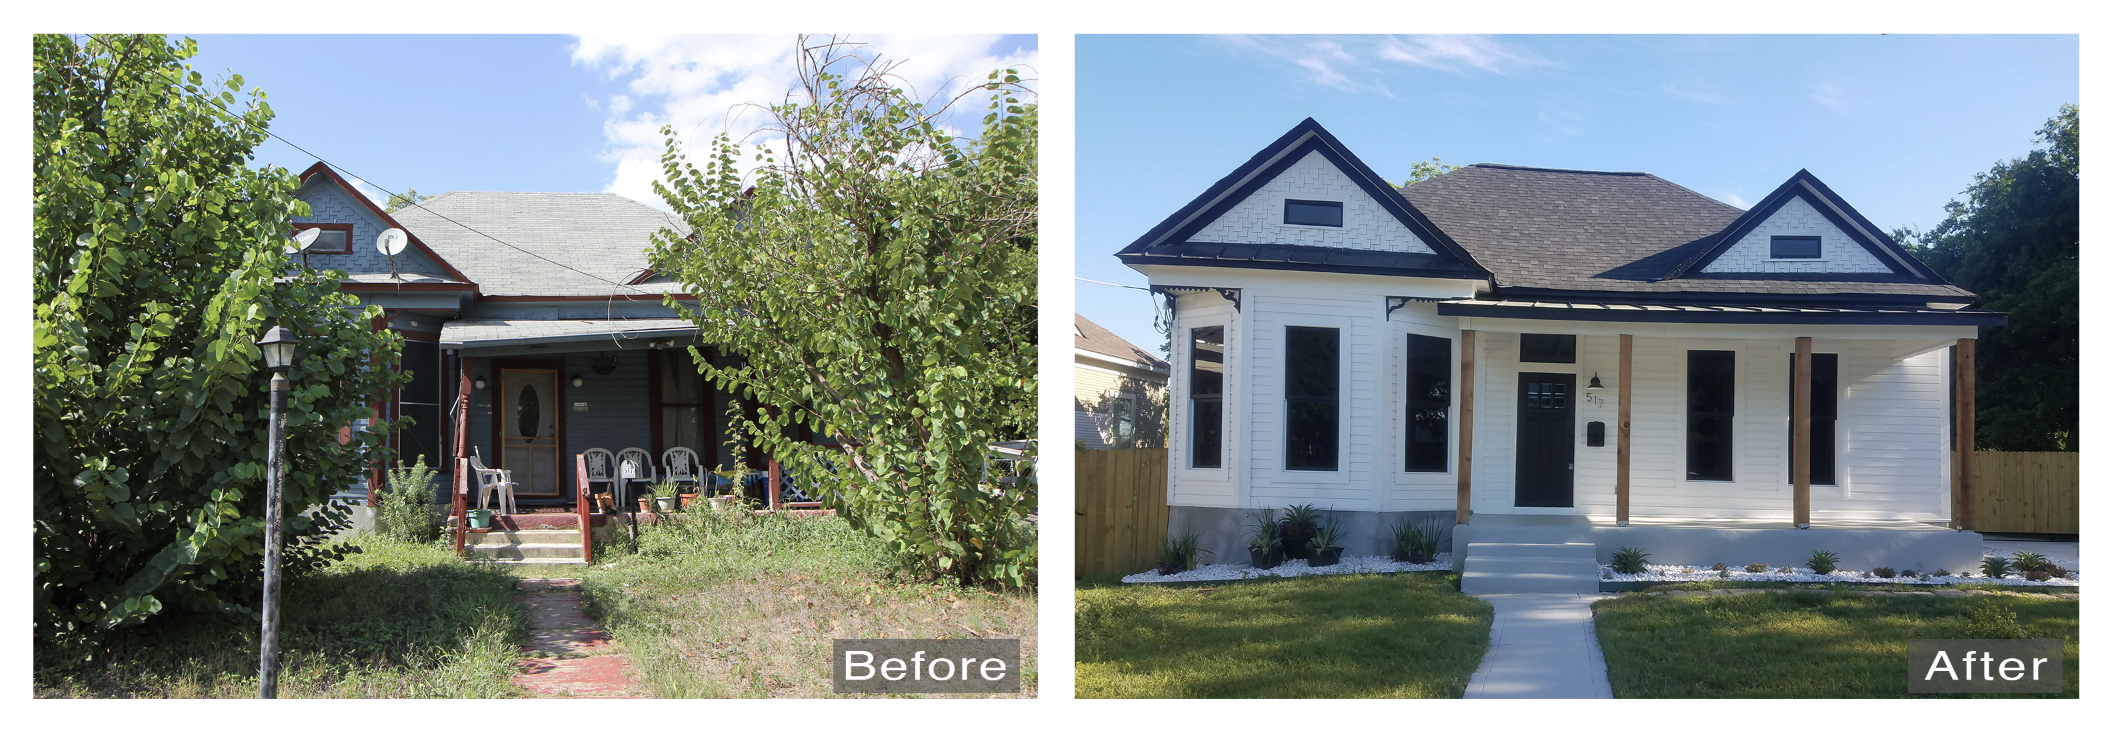 517 Burleson Before & After Exterior 2.png